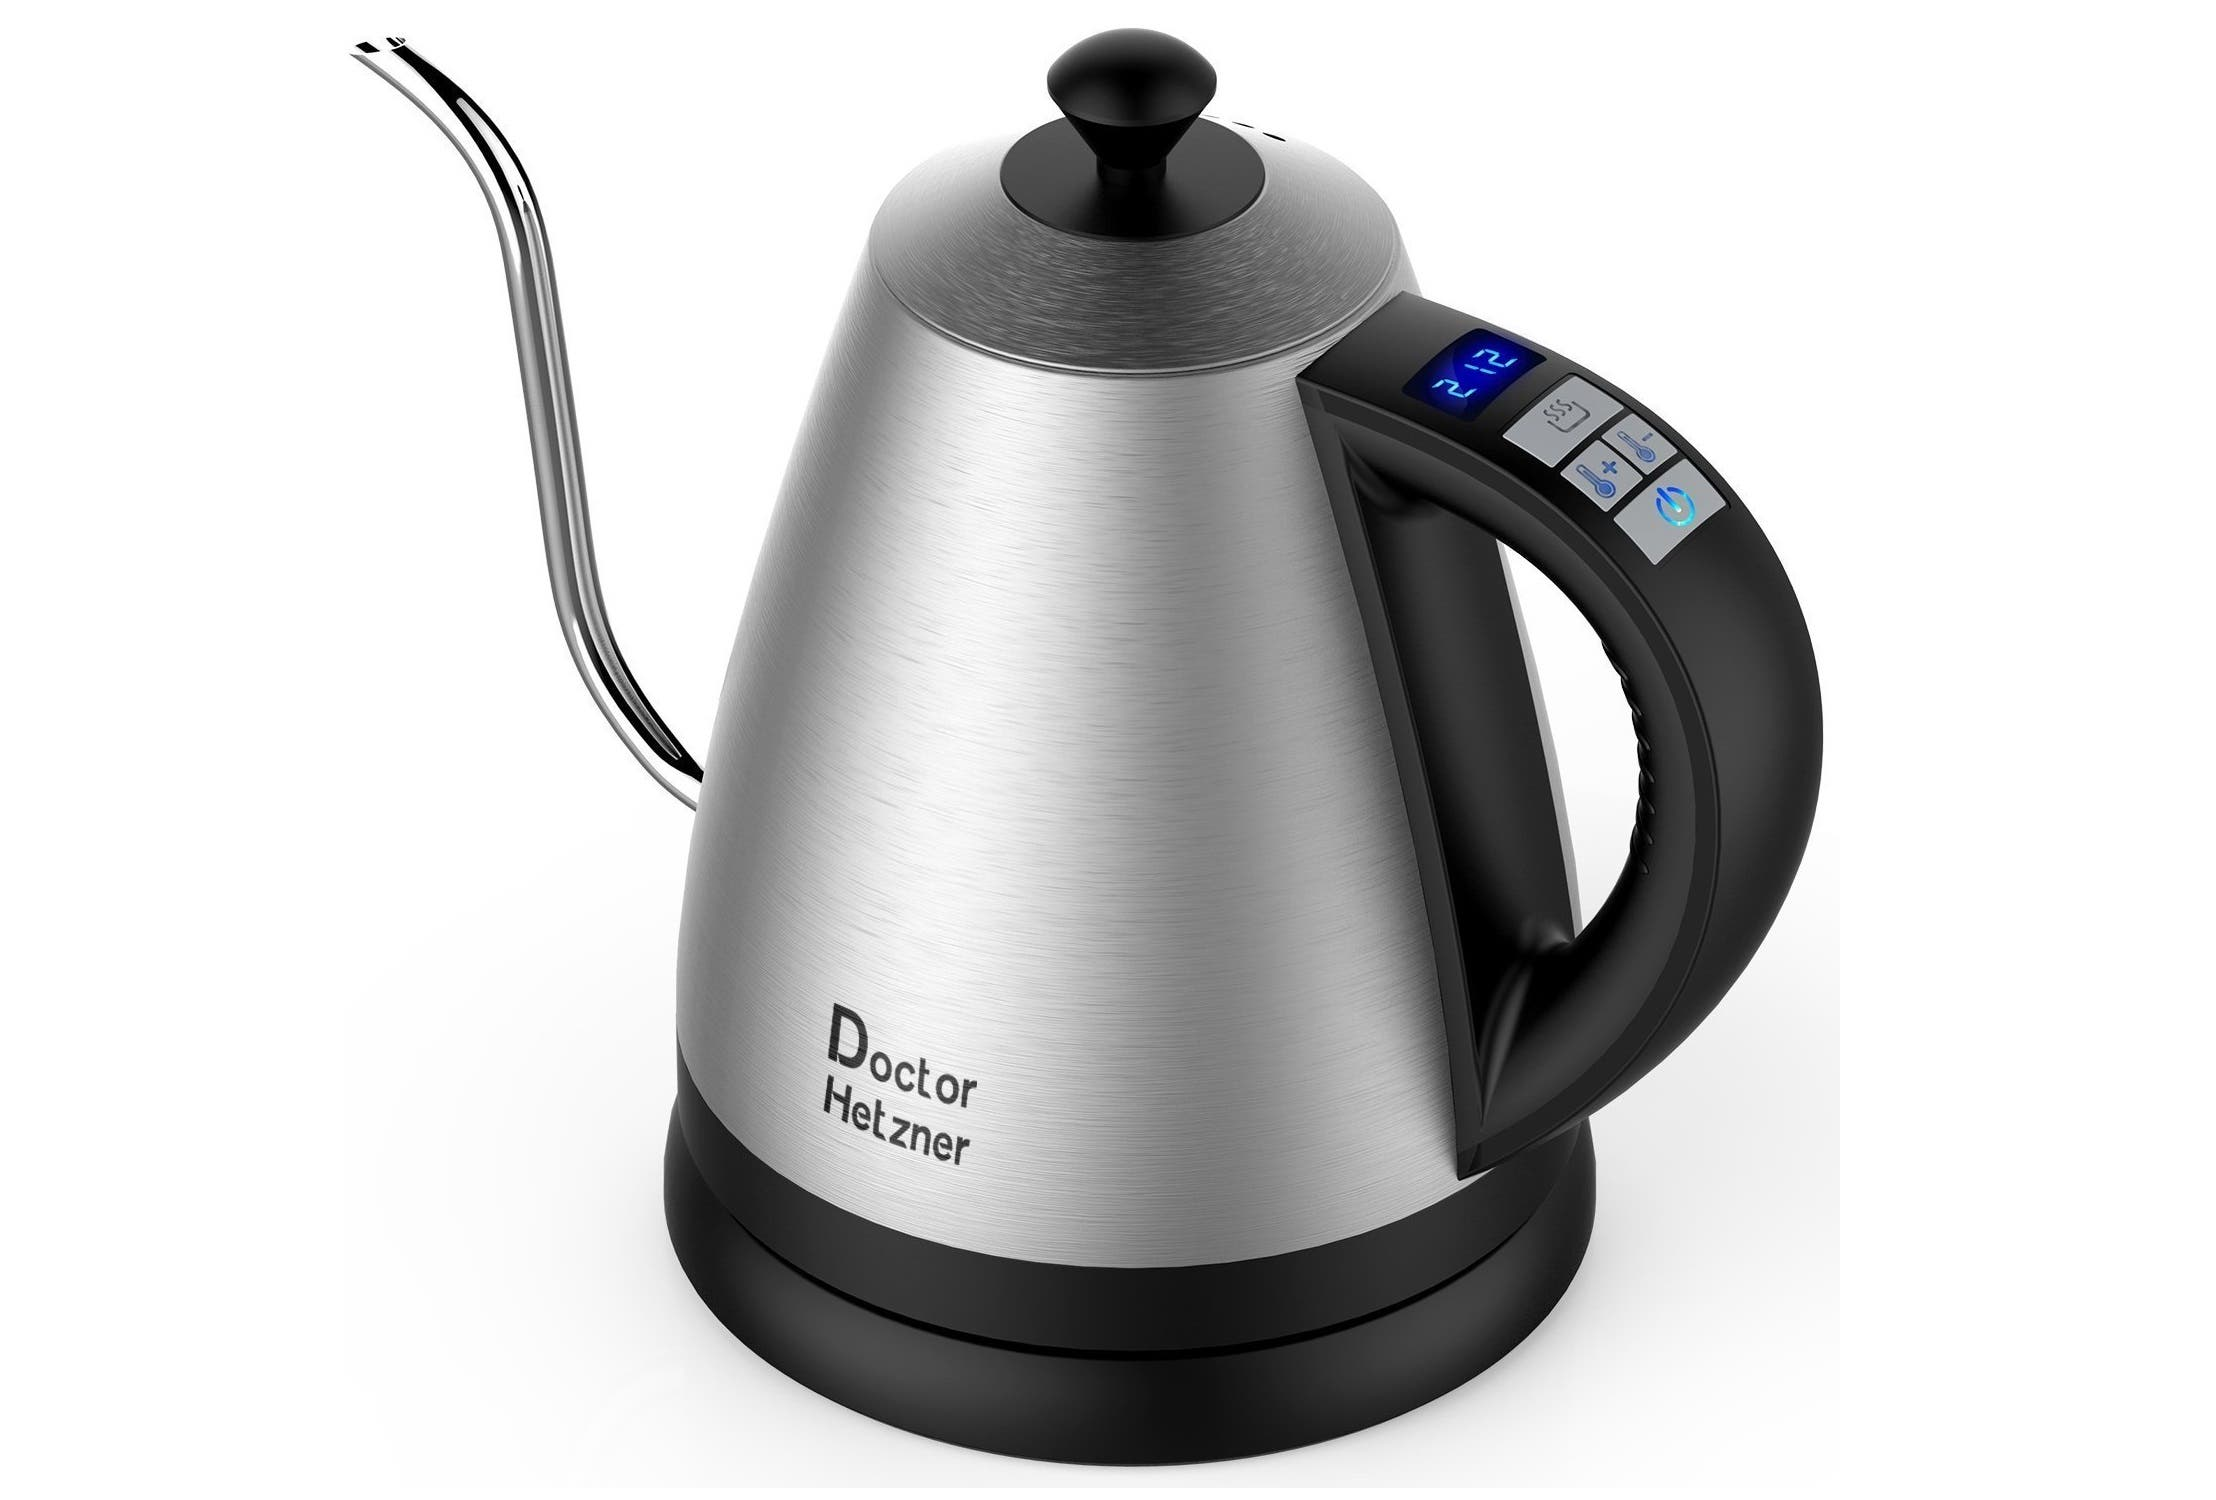 Gooseneck Kettle by Doctor Hetzner